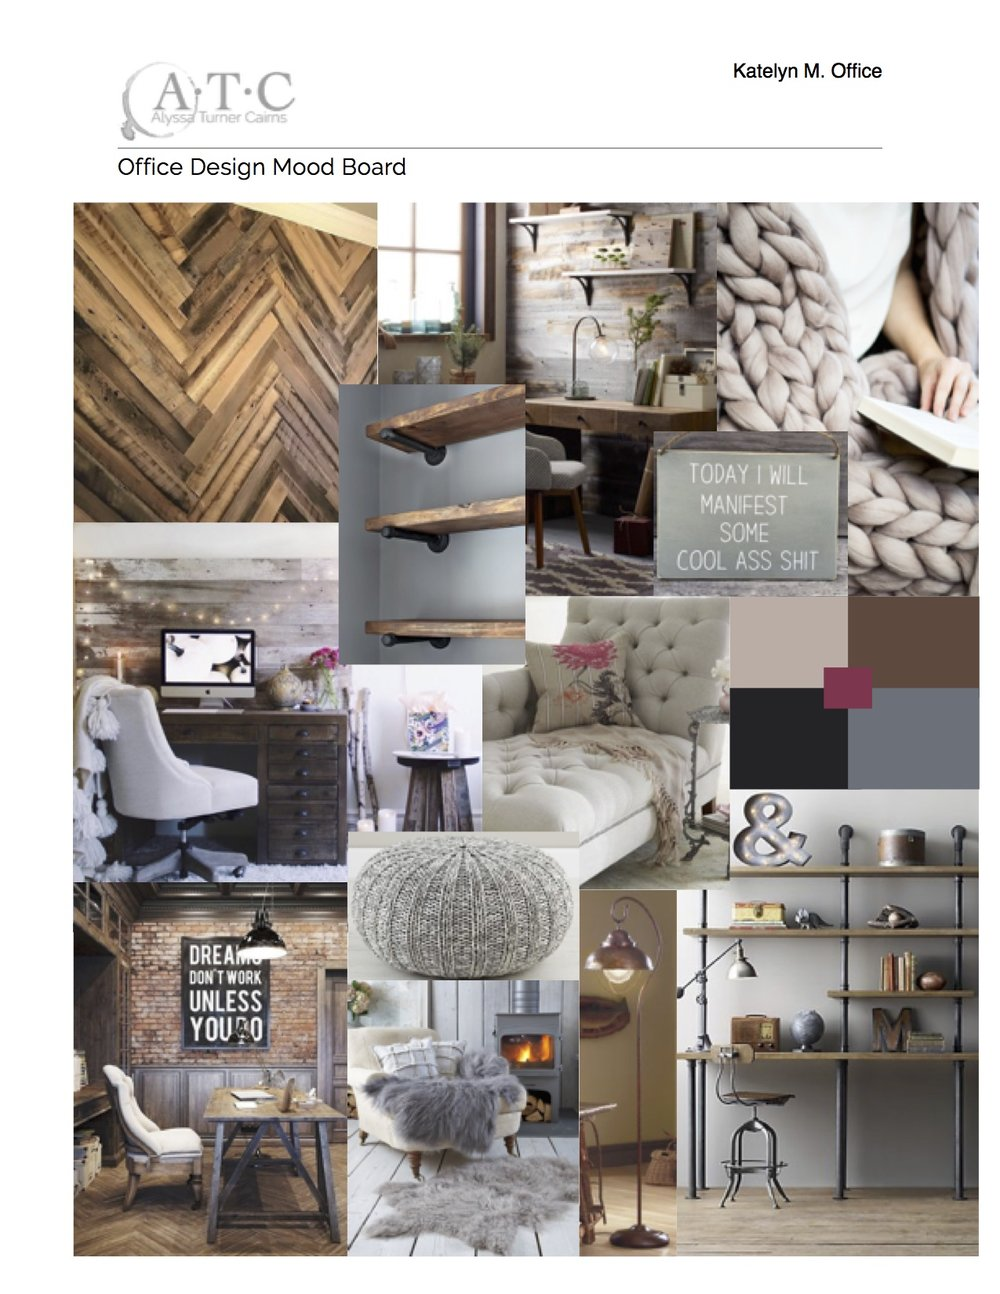 Cozy Rustic Office Mood Board: all images are not mine, and are used as part of the client consultation process.